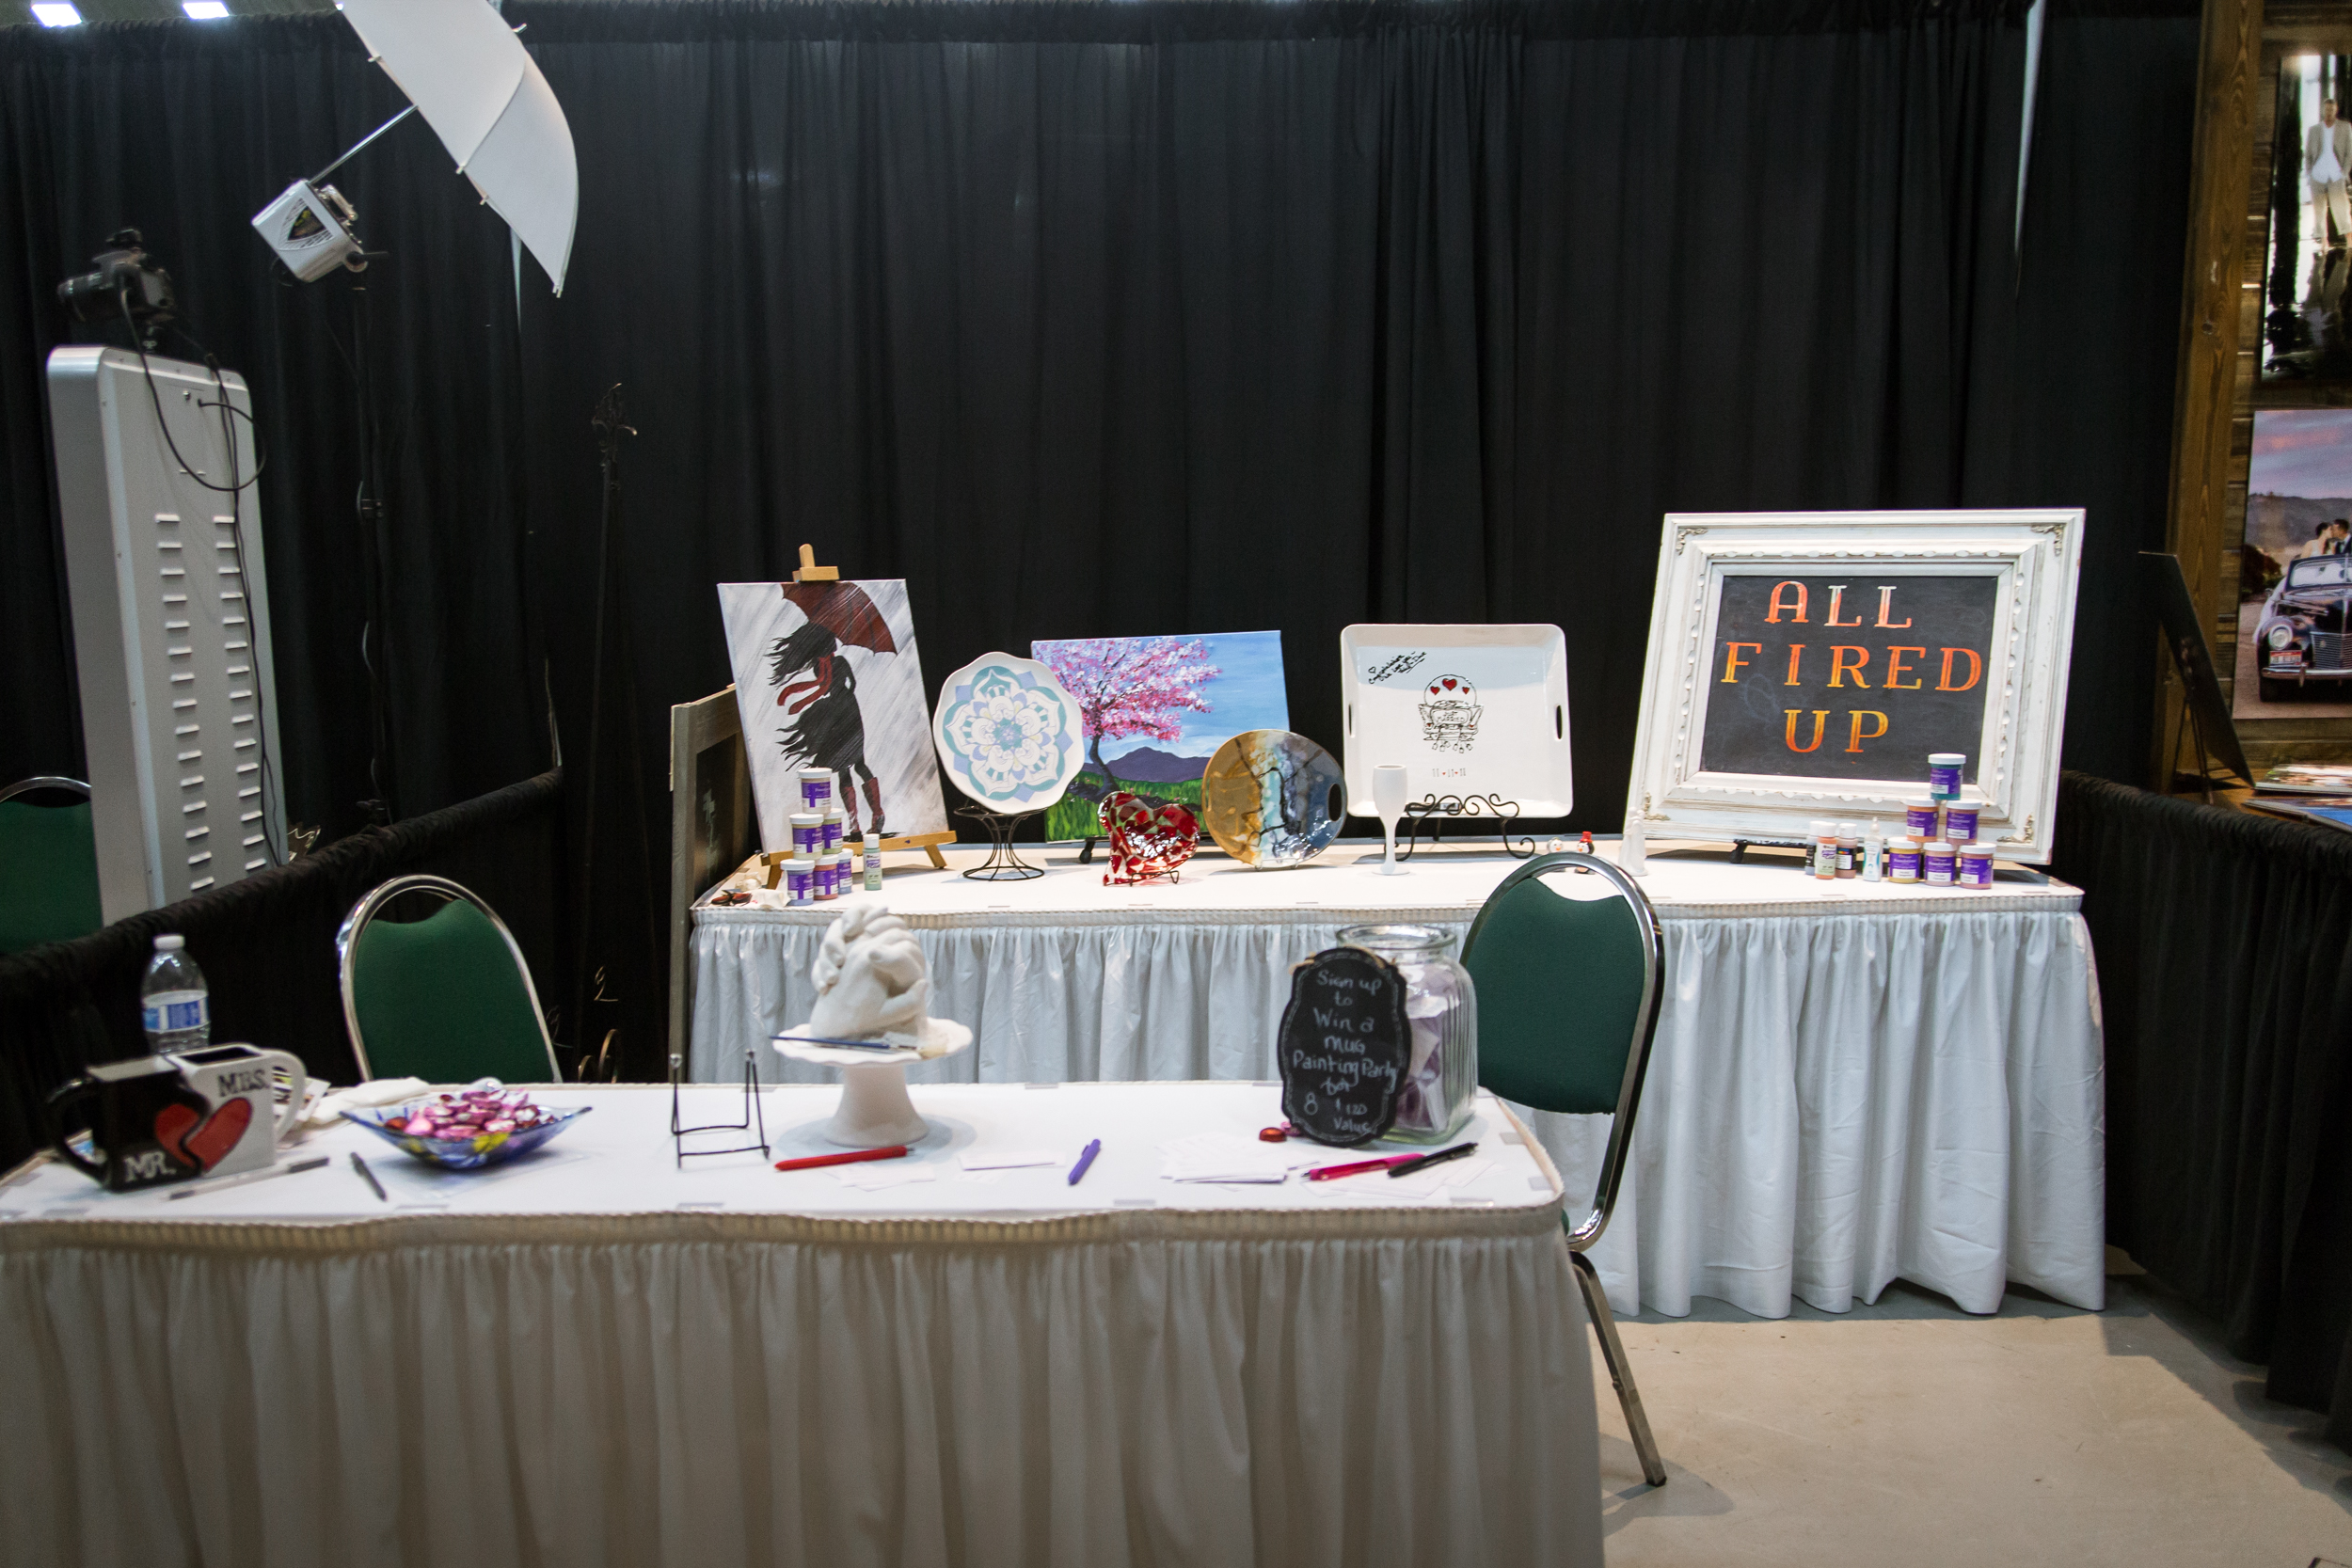 All Fired Up Redding Bridal Show Wedding Expo